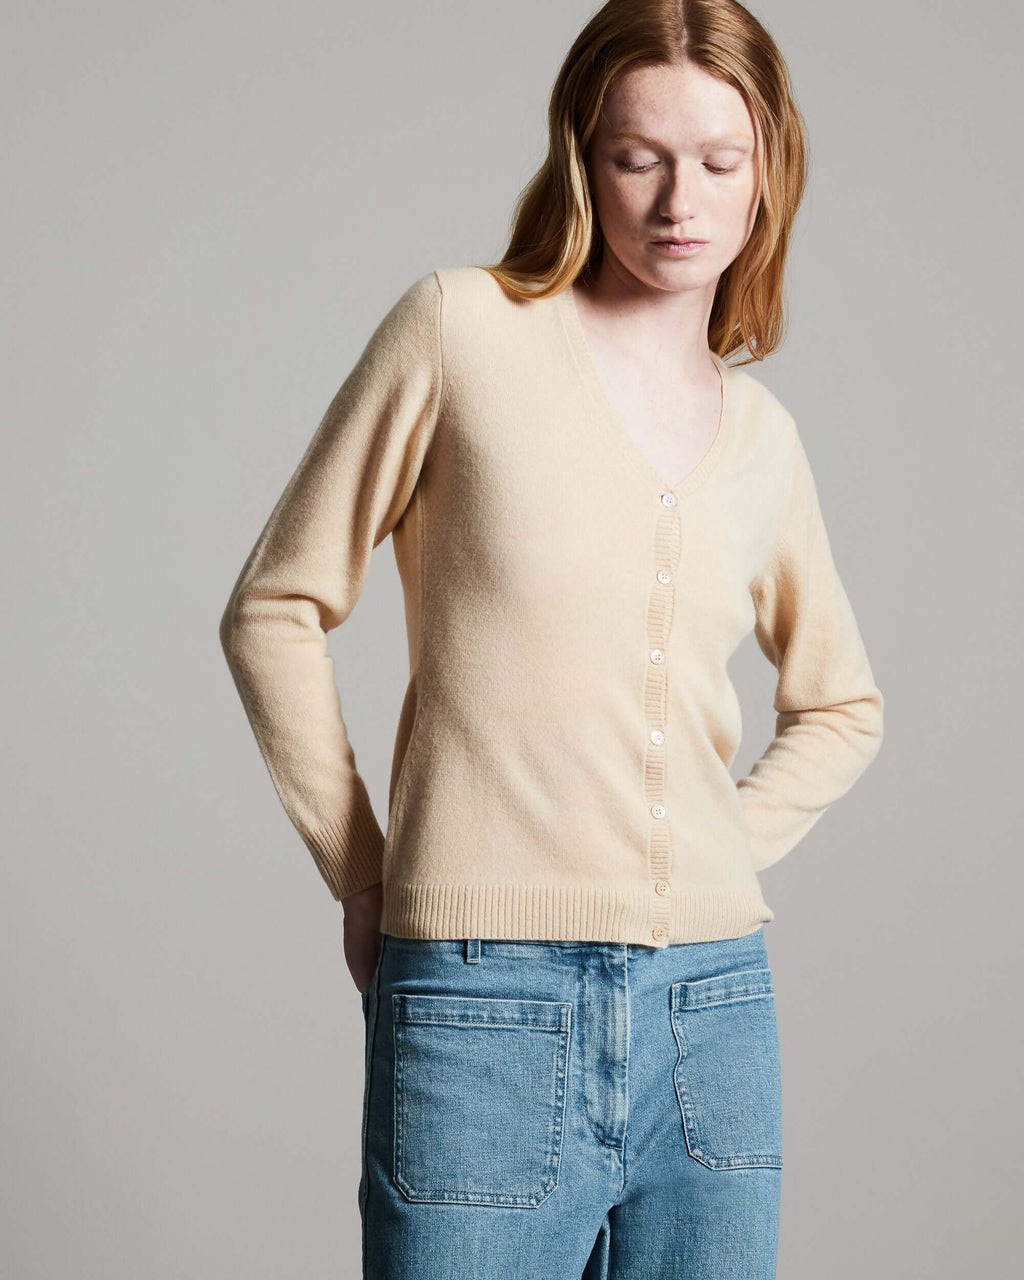 Cardigan Scollo V in Kid Cashmere beige donna - Lanificio Colombo